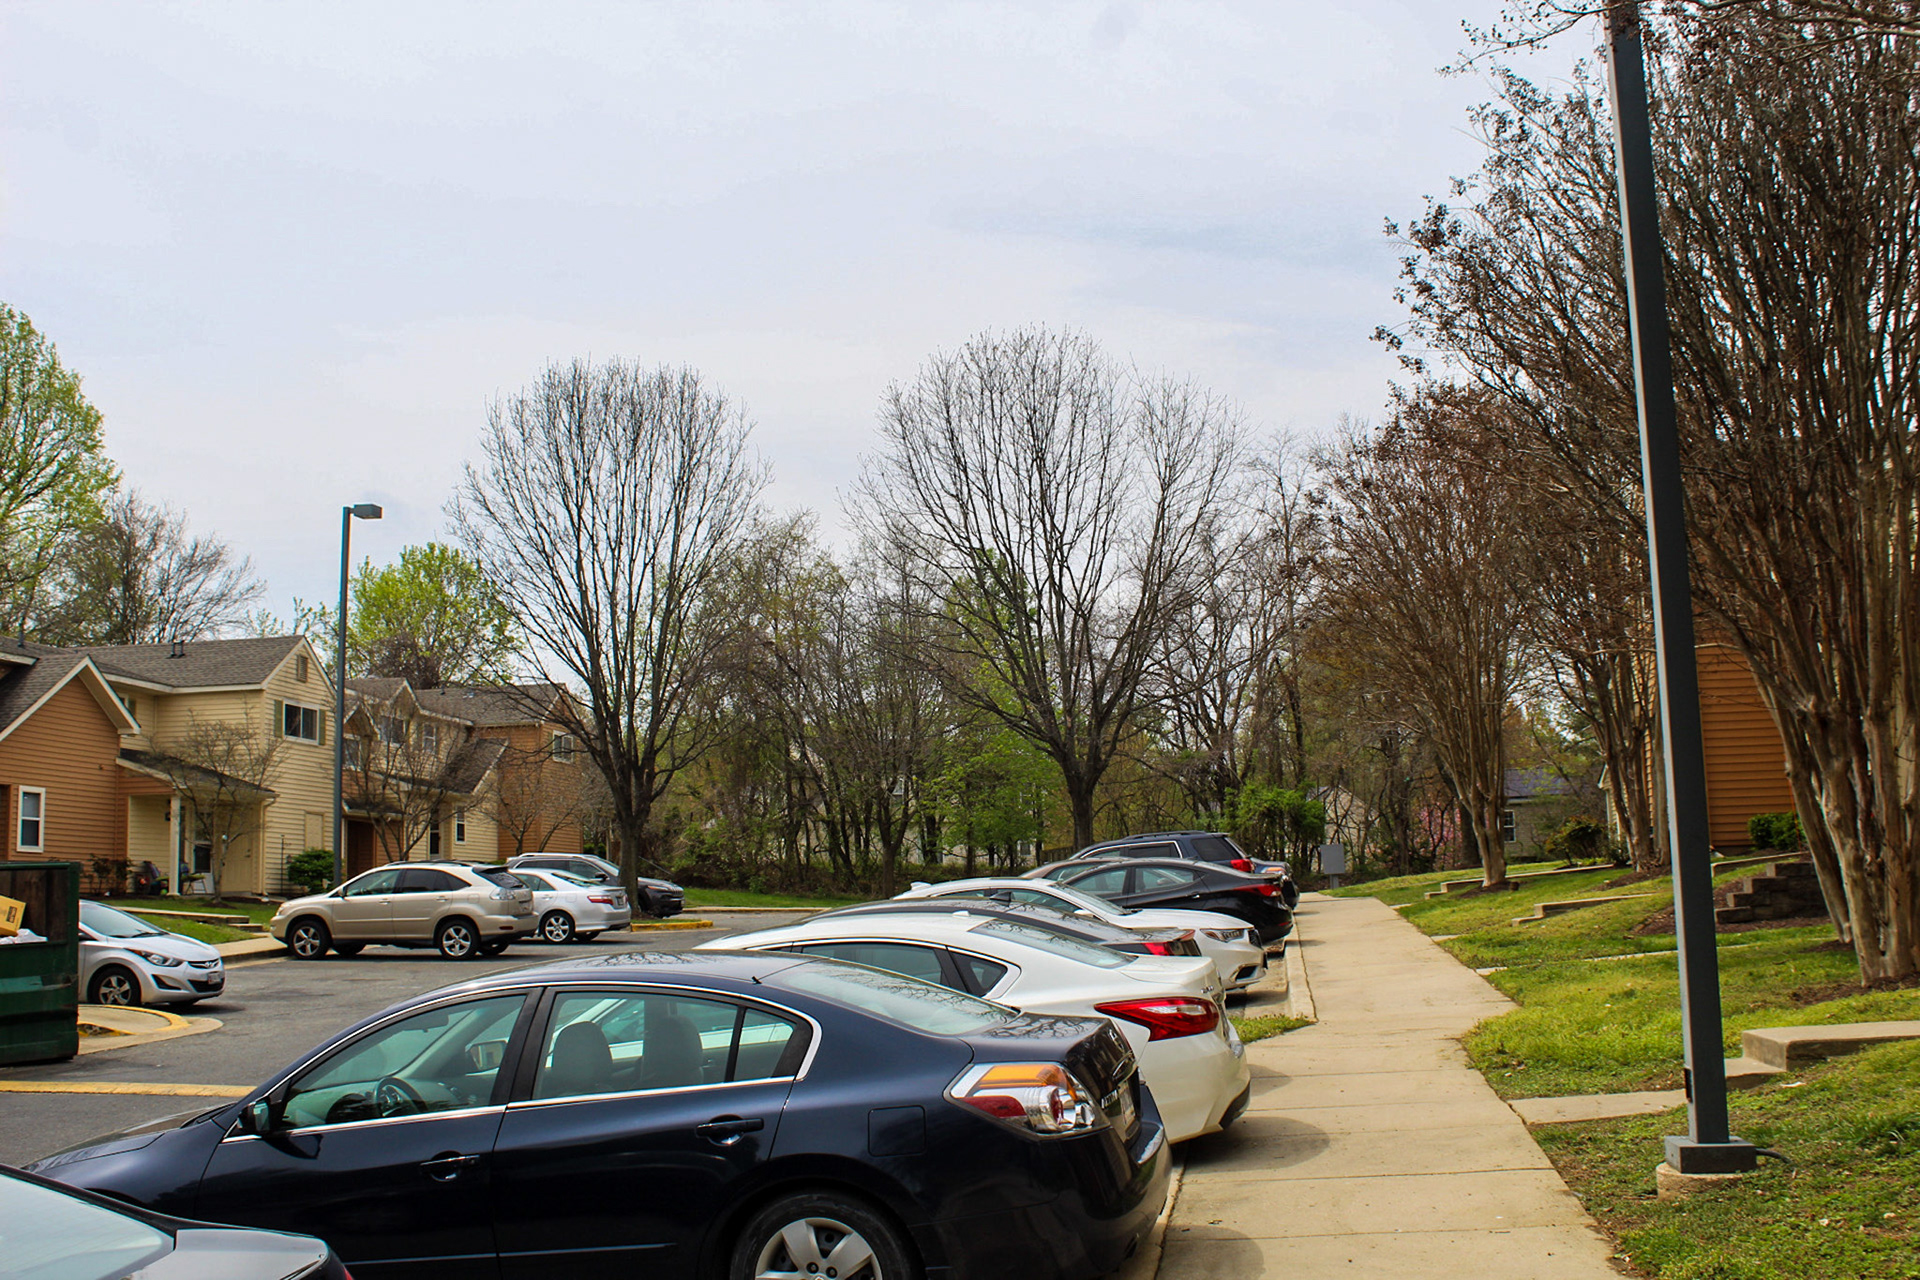 More cars home than usual in my housing complex in Landover, Md- April 6